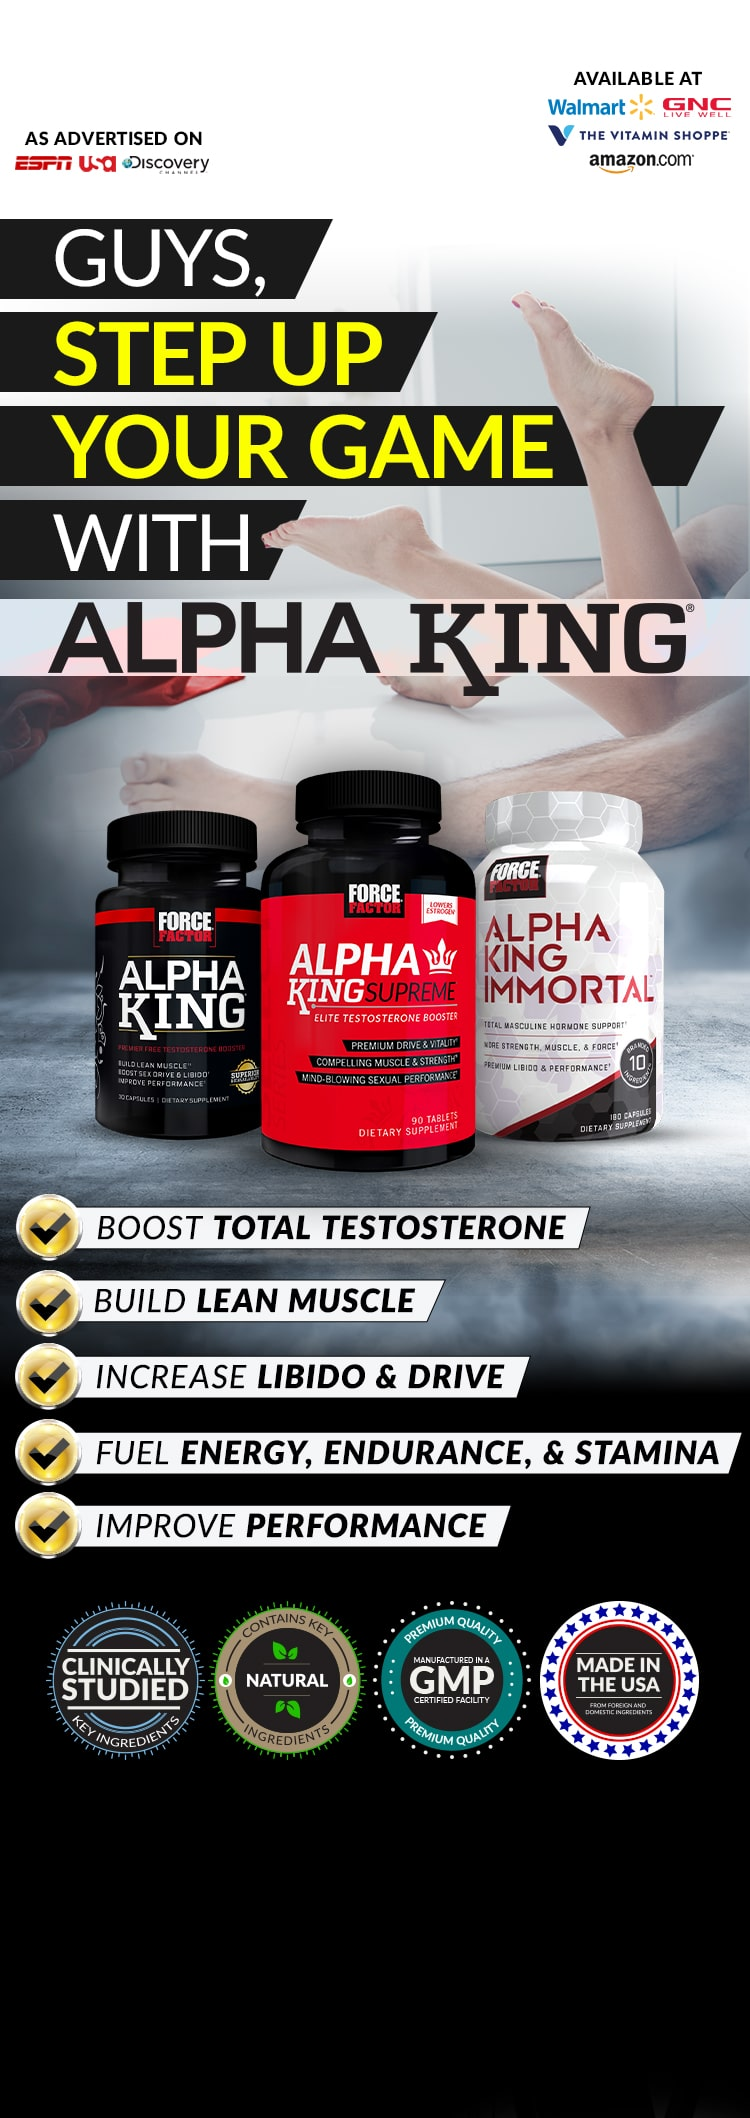 GUYS, STEP UP YOUR GAME WITH ALPHA KING® - BOOST TOTAL TESTOSTERONE, BUILD LEAN MUSCLE, INCREASE LIBIDO & DRIVE, FUEL ENERGY, ENDURANCE, & STAMINA, IMPROVE PERFORMANCE